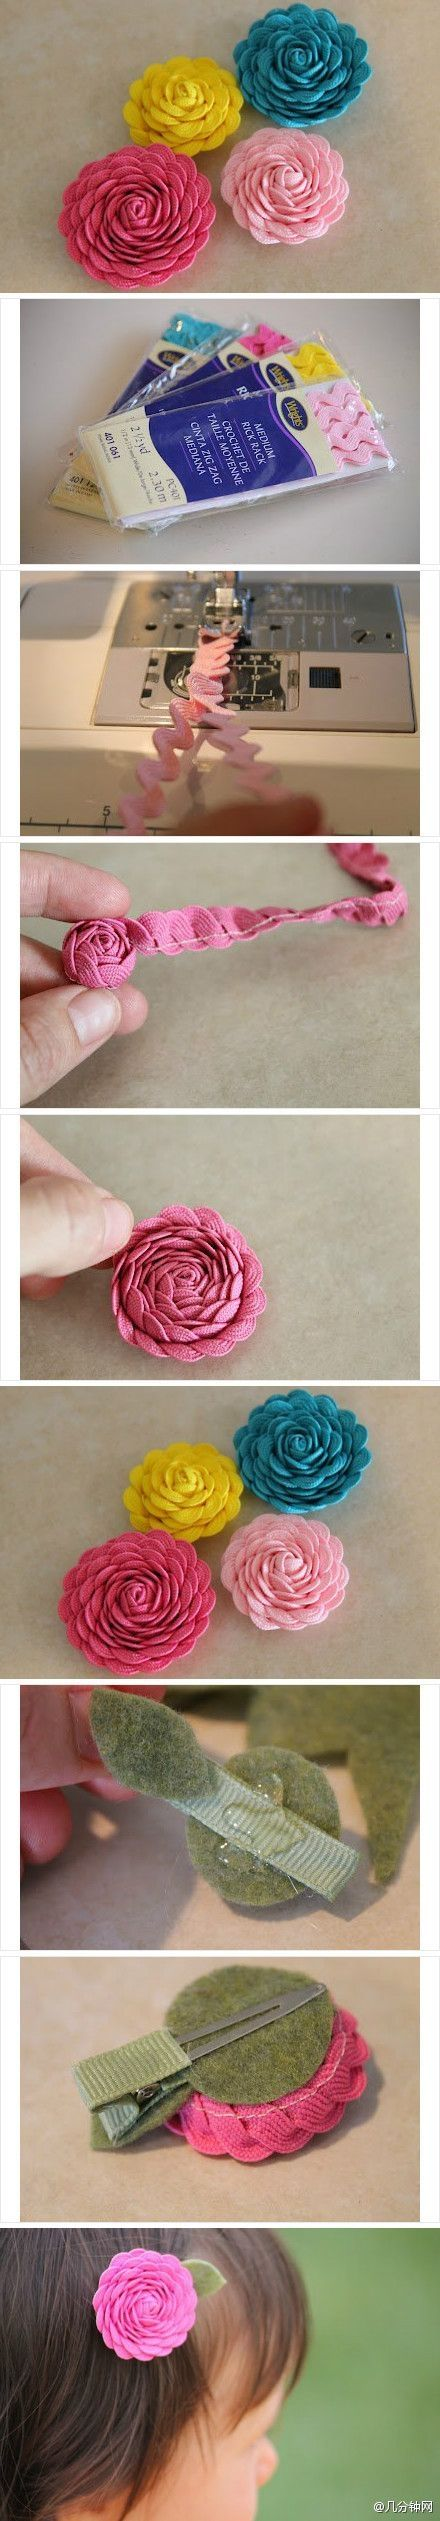 DIY flowers....adorable in the hair of a little one. by susieteague